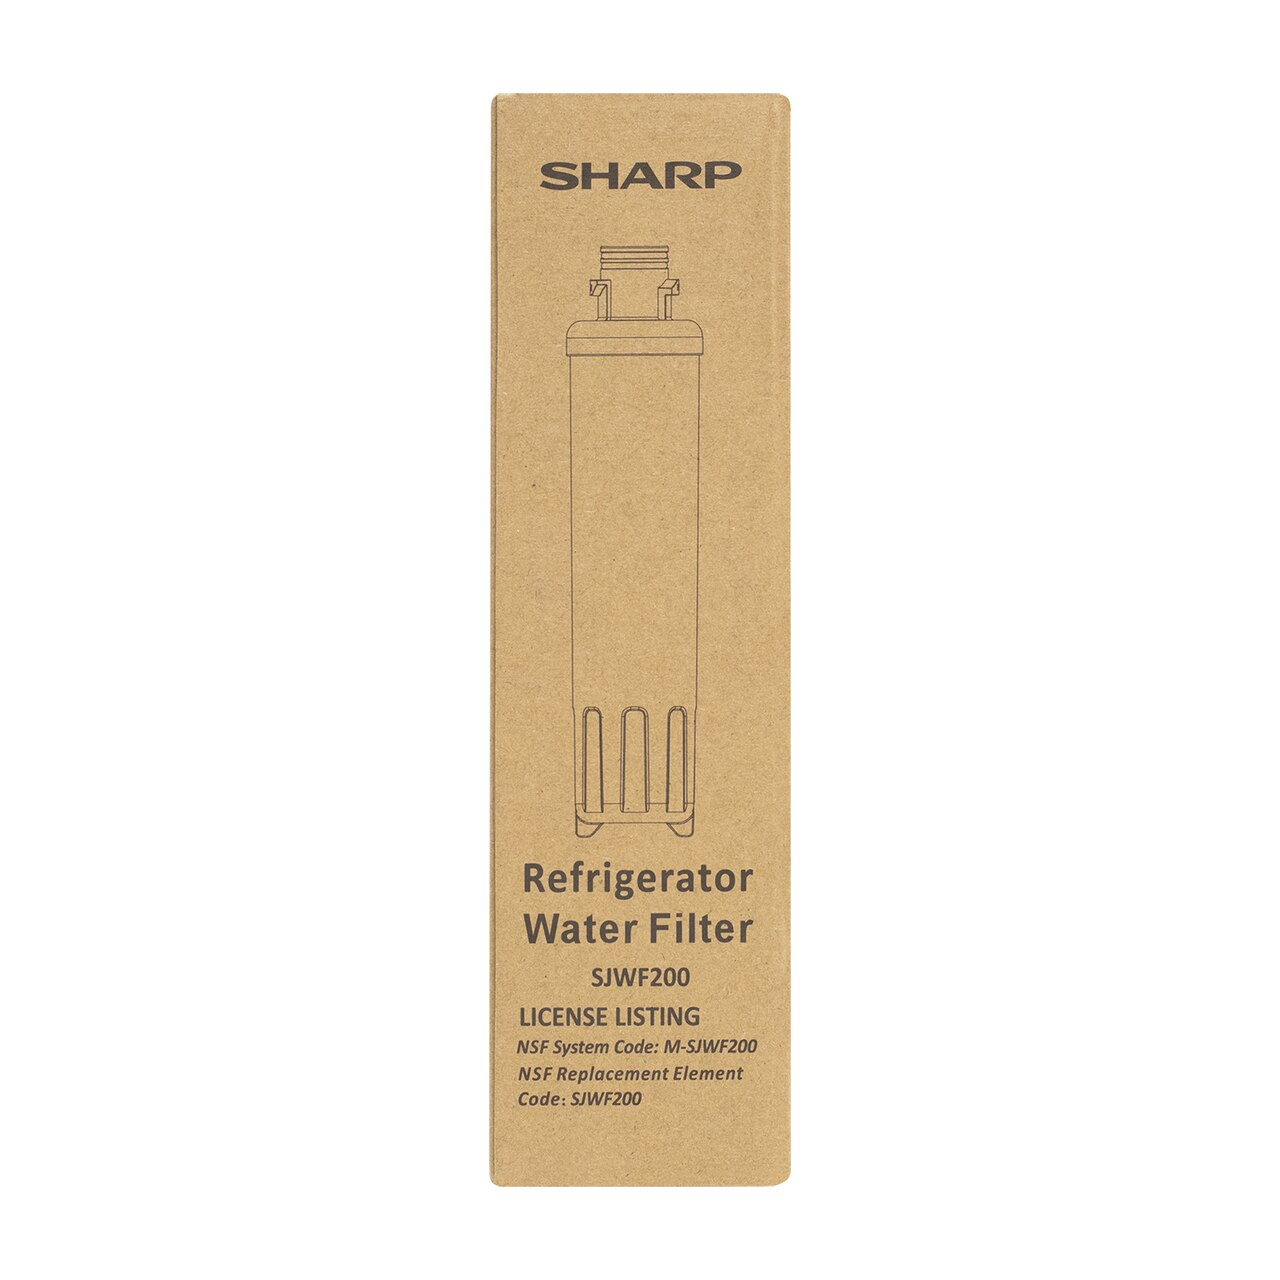 Box for Replacement Water Filter for Sharp SJG2254FS Refrigerator (SJWF200)